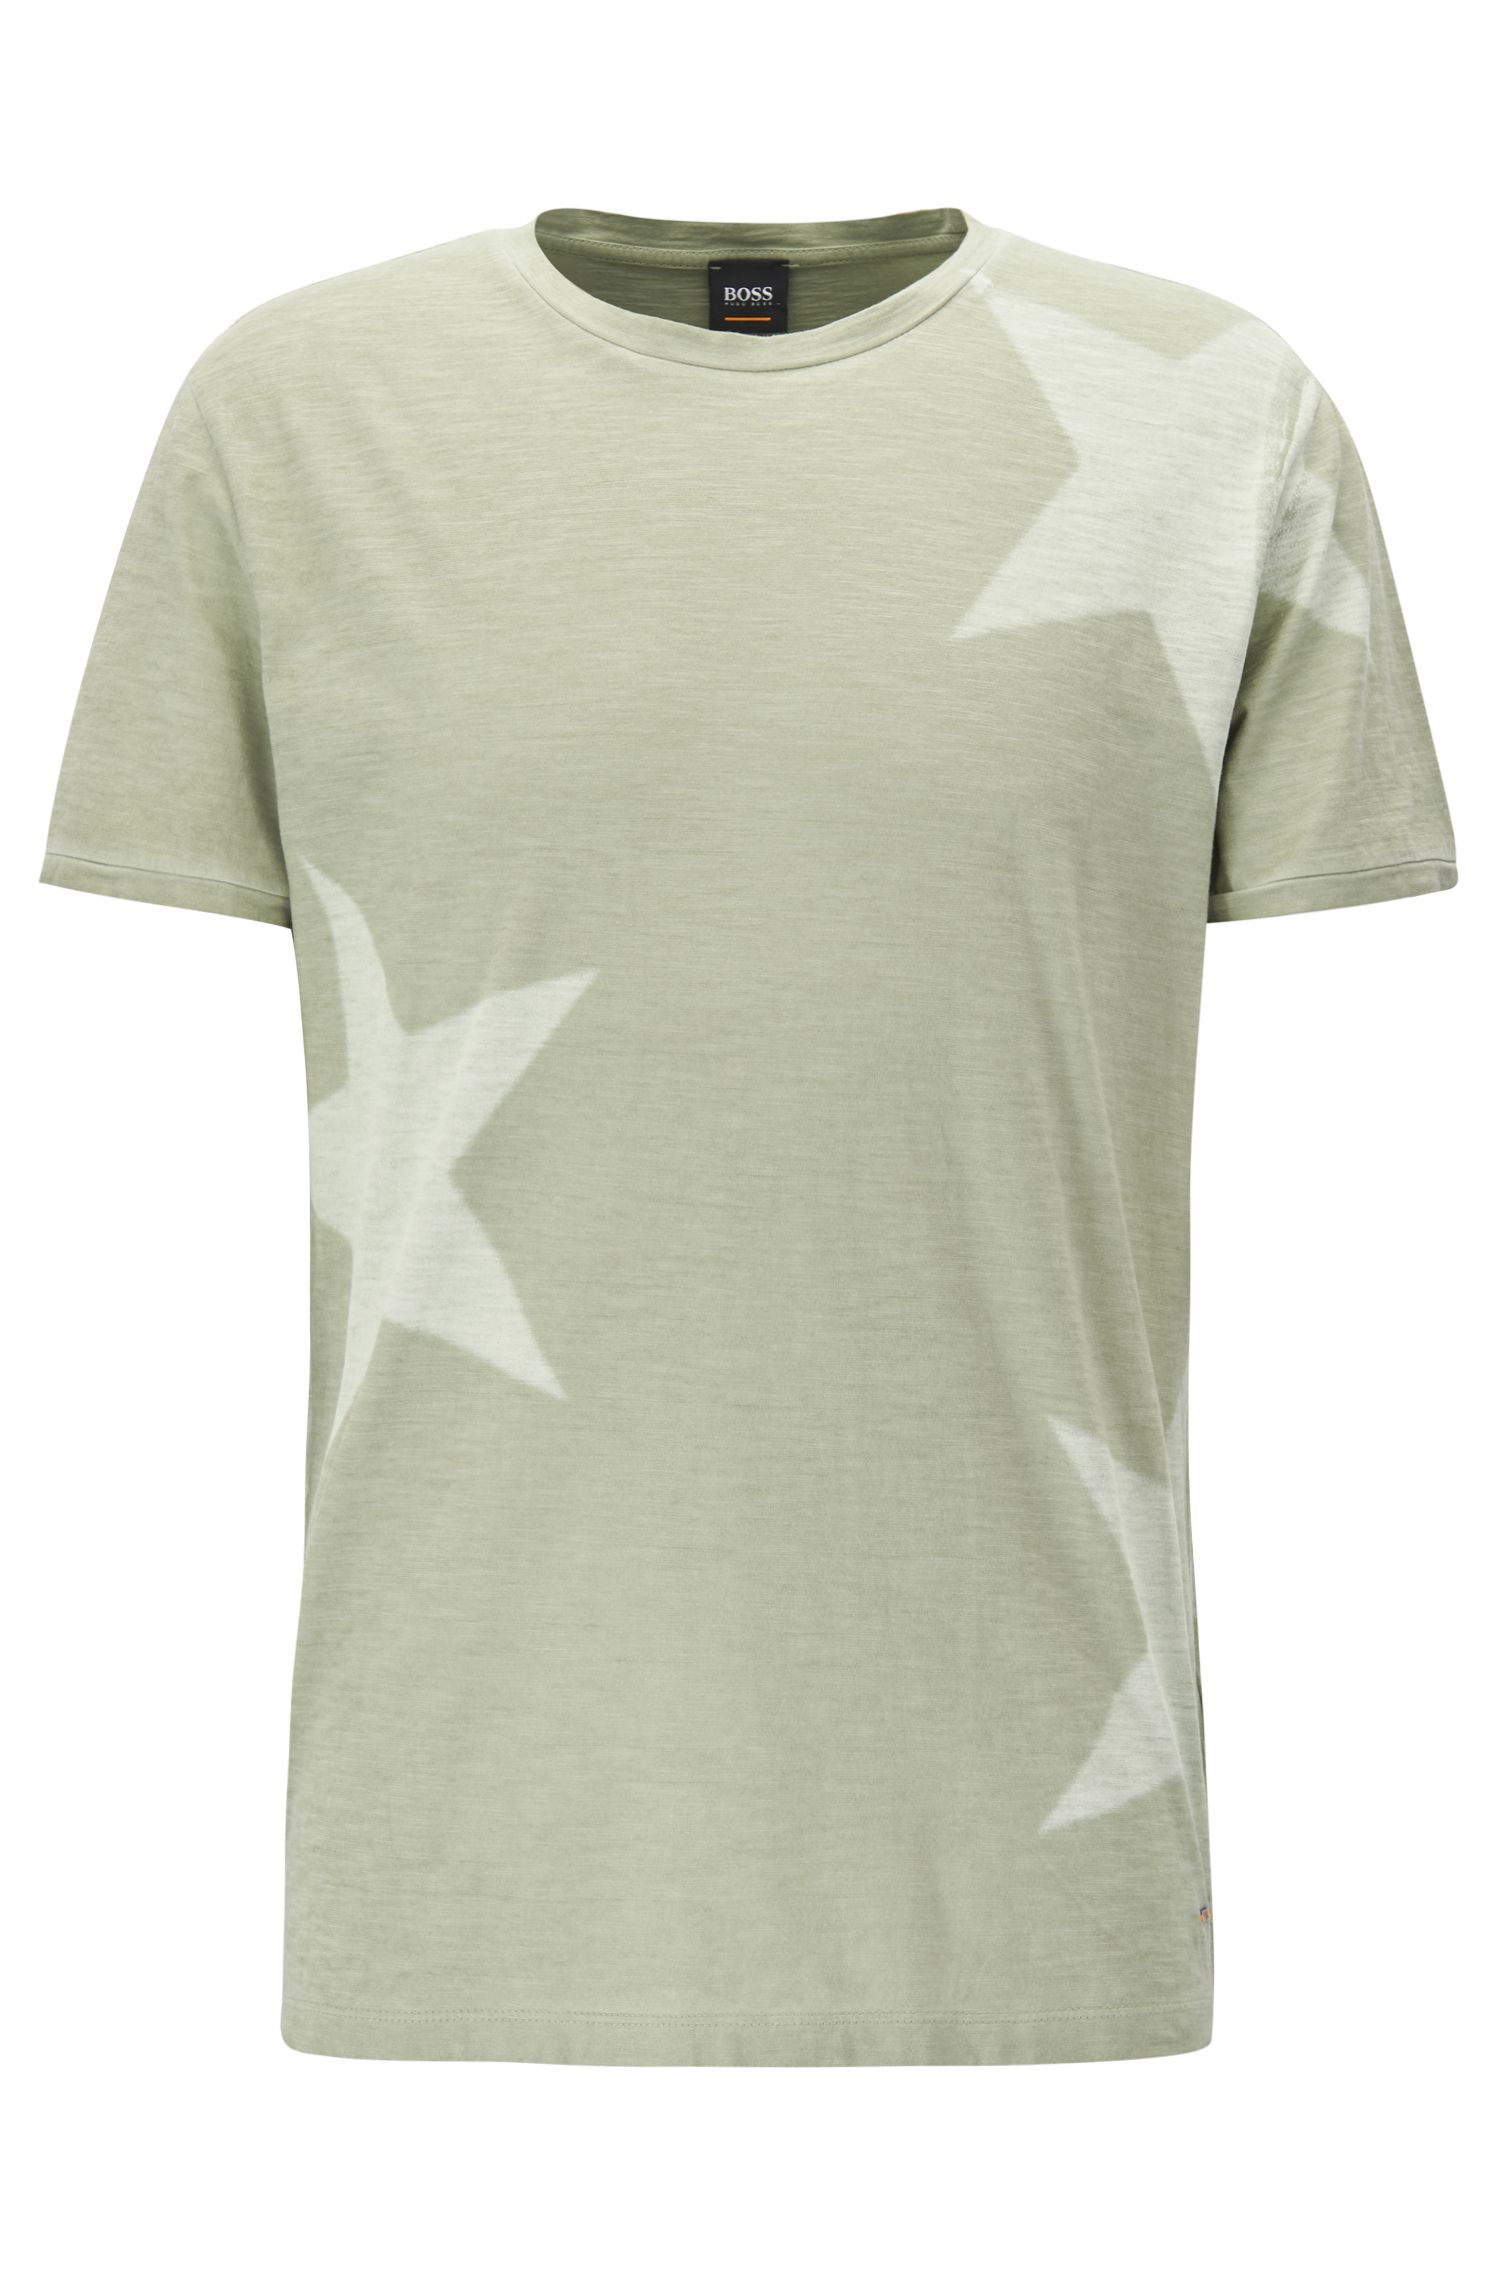 Star-print T-shirt in slub cotton jersey